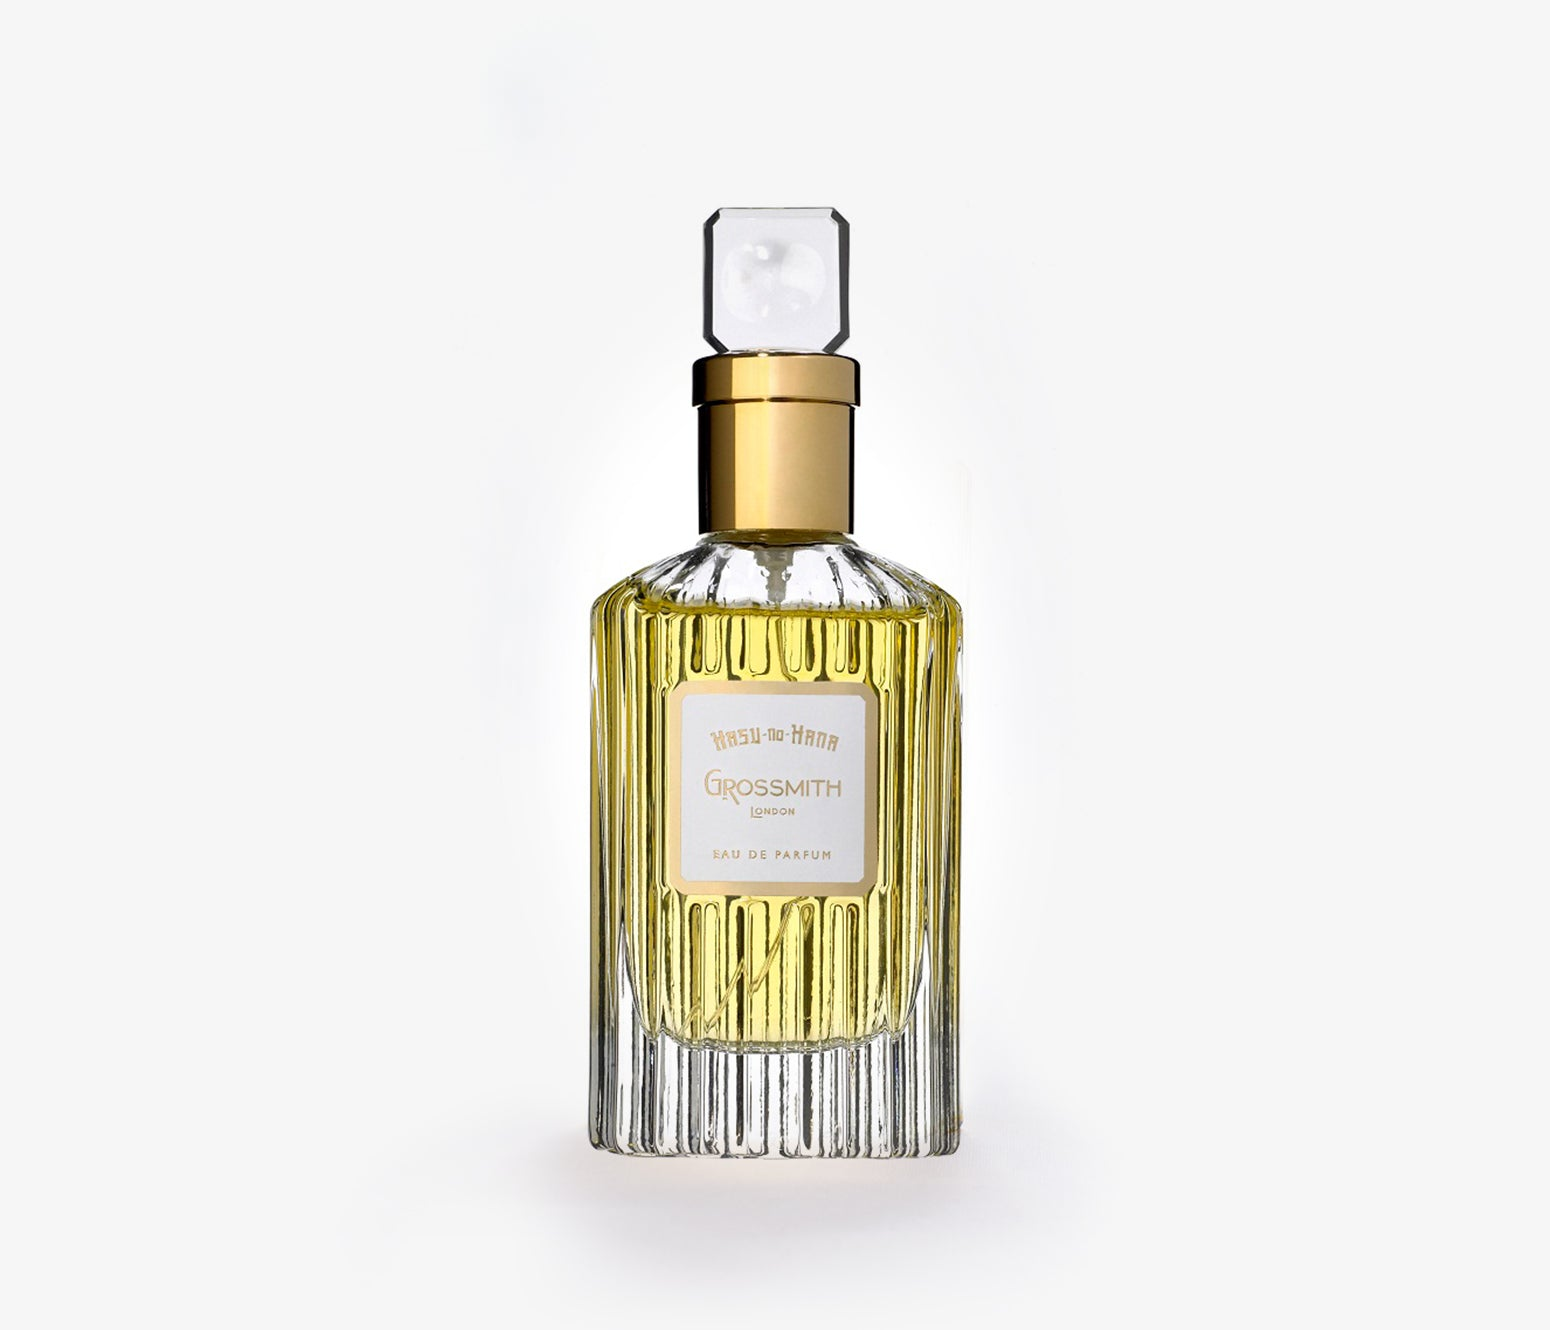 Grossmith London - Hasu-no-Hana - 100ml - KFE8159 - product image - Fragrance - Les Senteurs